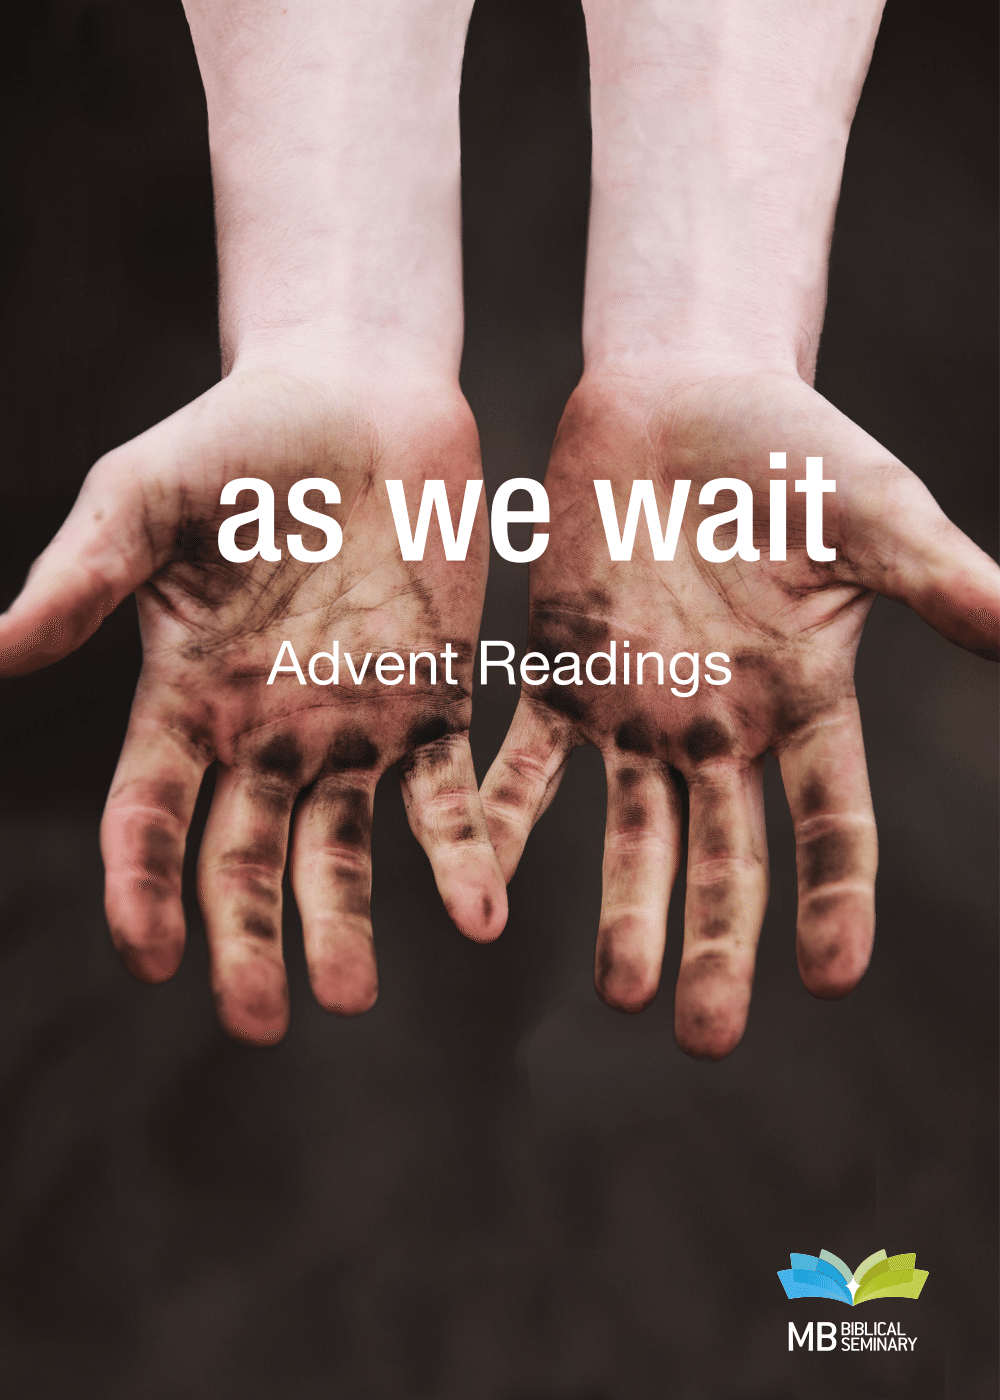 Advent booklet cover